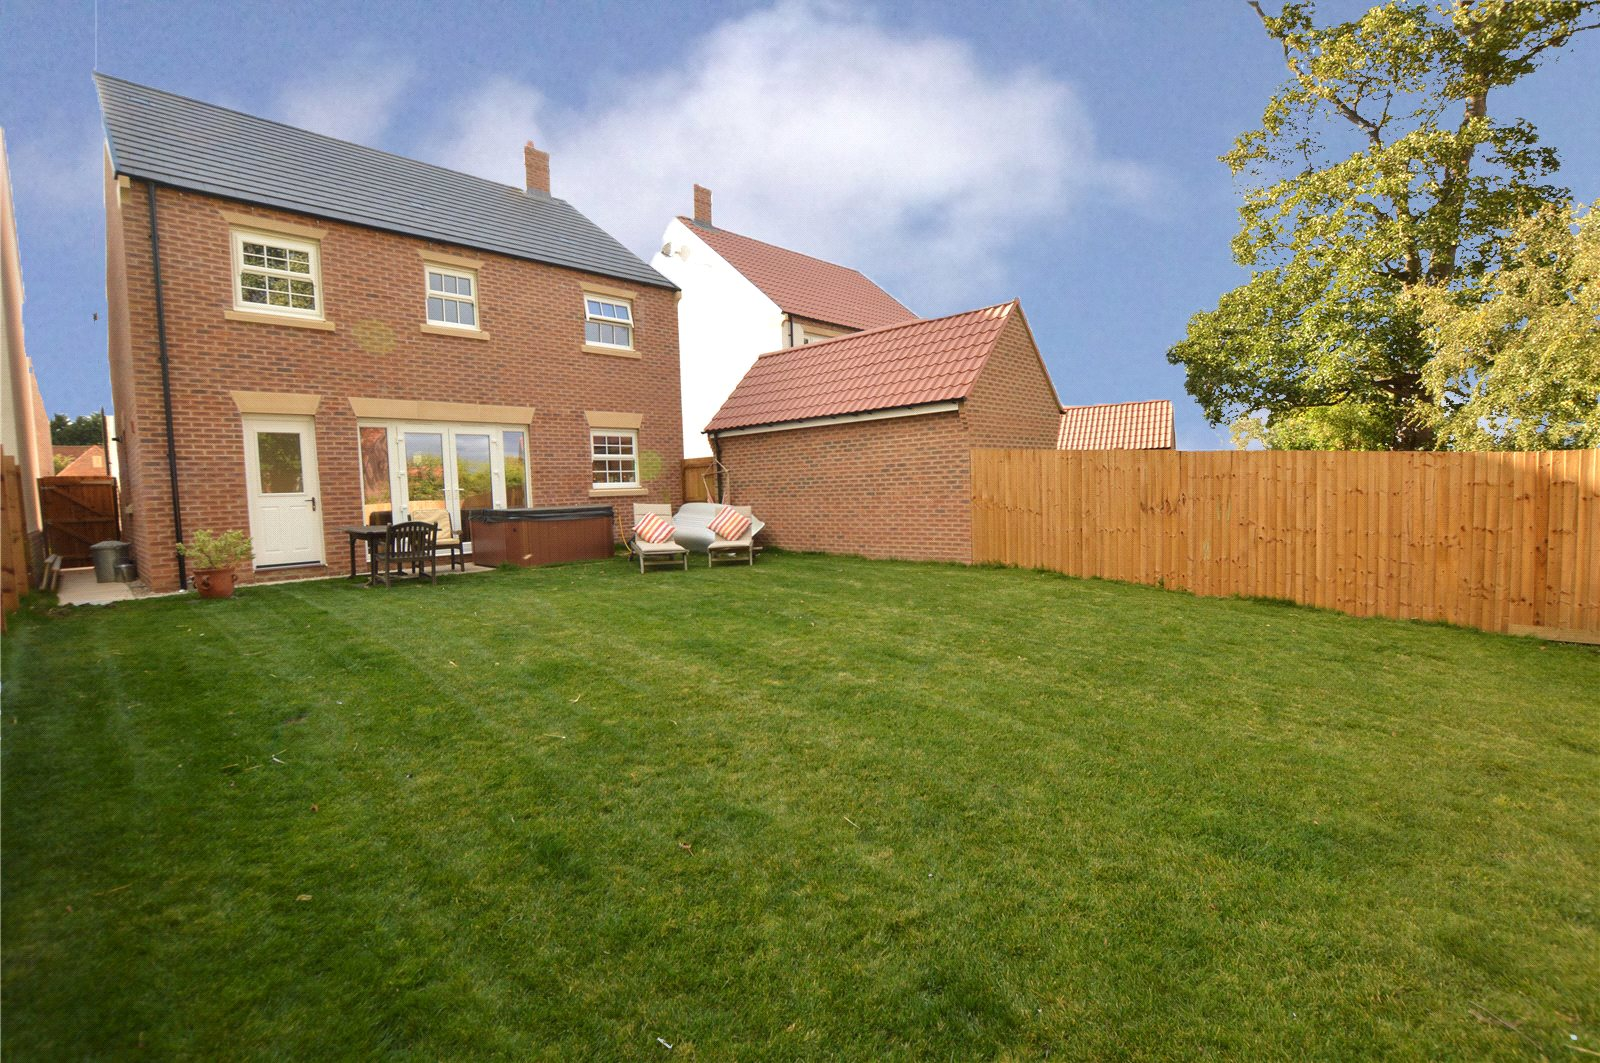 property for sale in green hammerton, exterior, rear garden. green lawn and garden furniture.